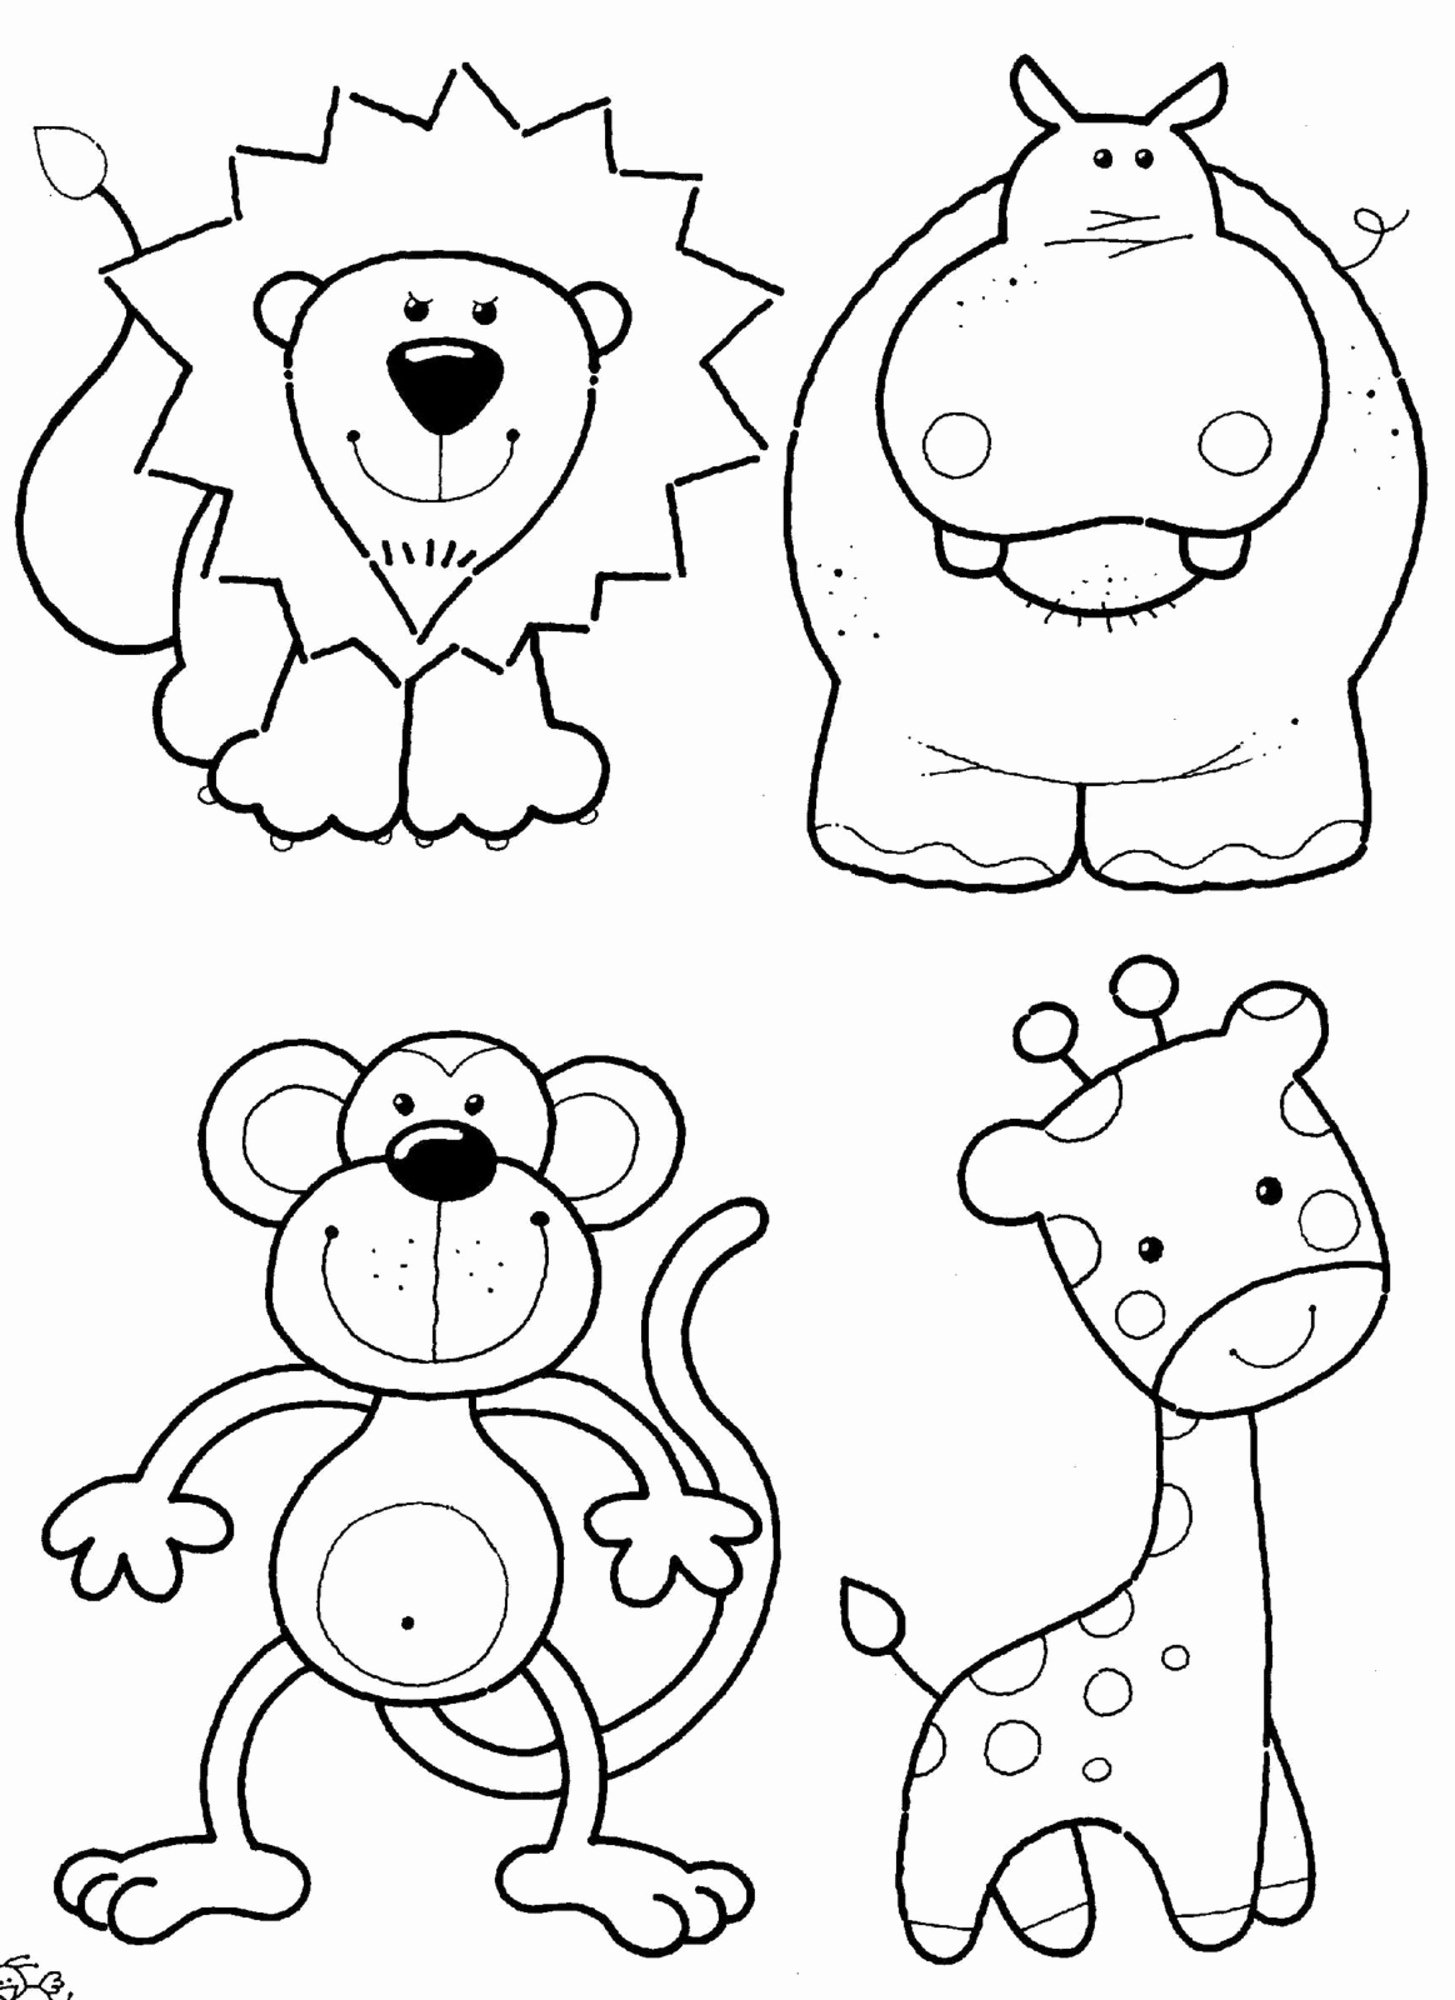 Worksheets for Preschoolers On Animals Fresh Coloring Book Cute Animals Zoo Fabulous for themed Math